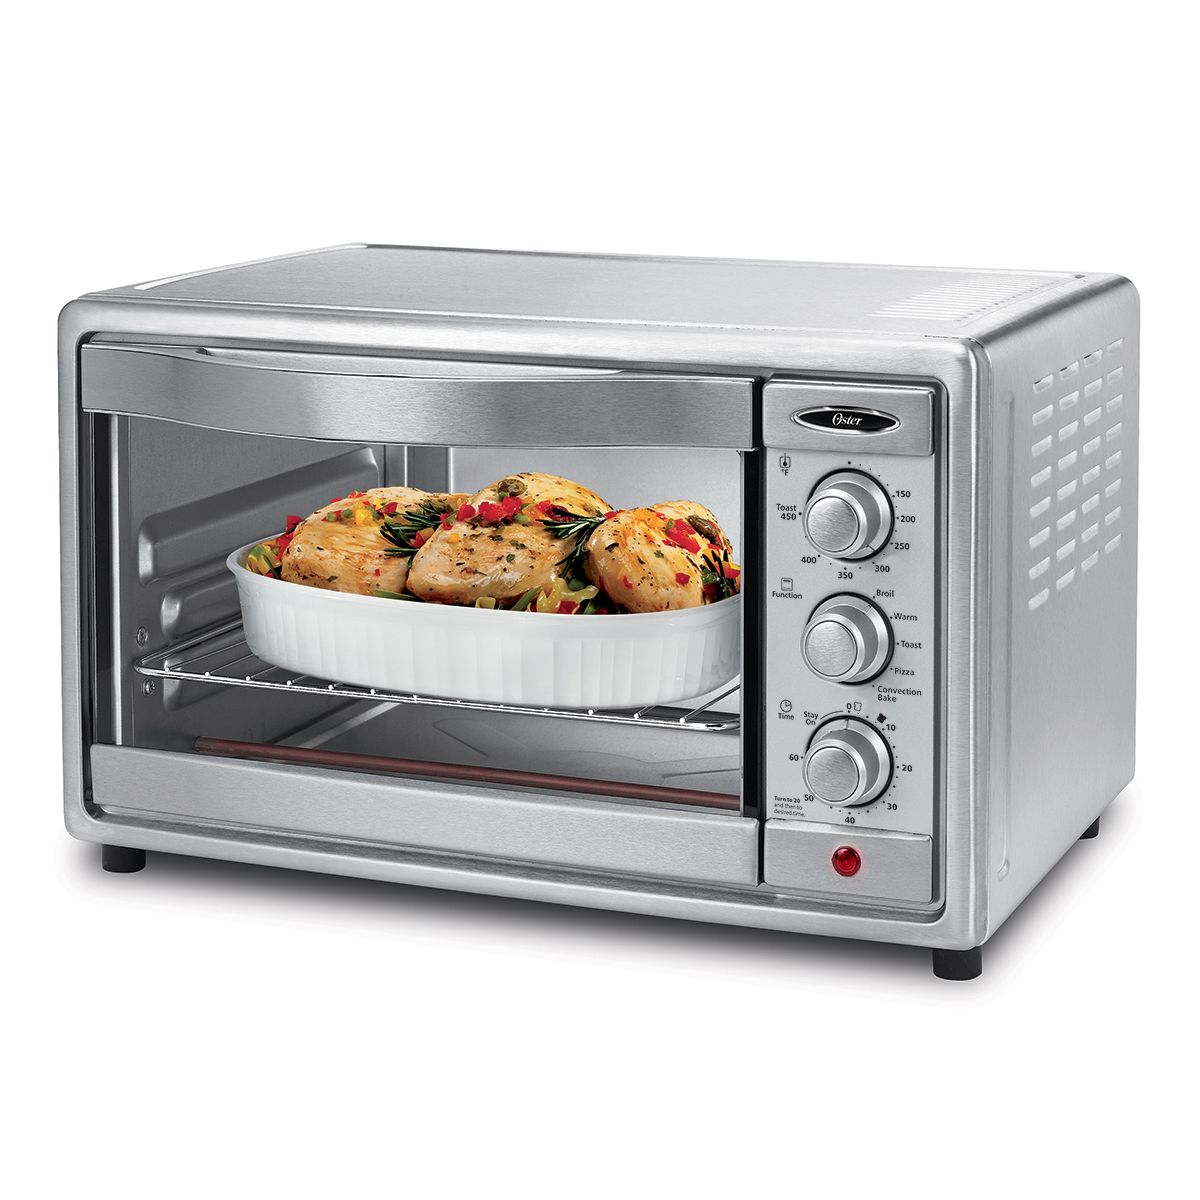 Oster 6 Slice Convection Toaster Oven Brushed Stainless Steel At